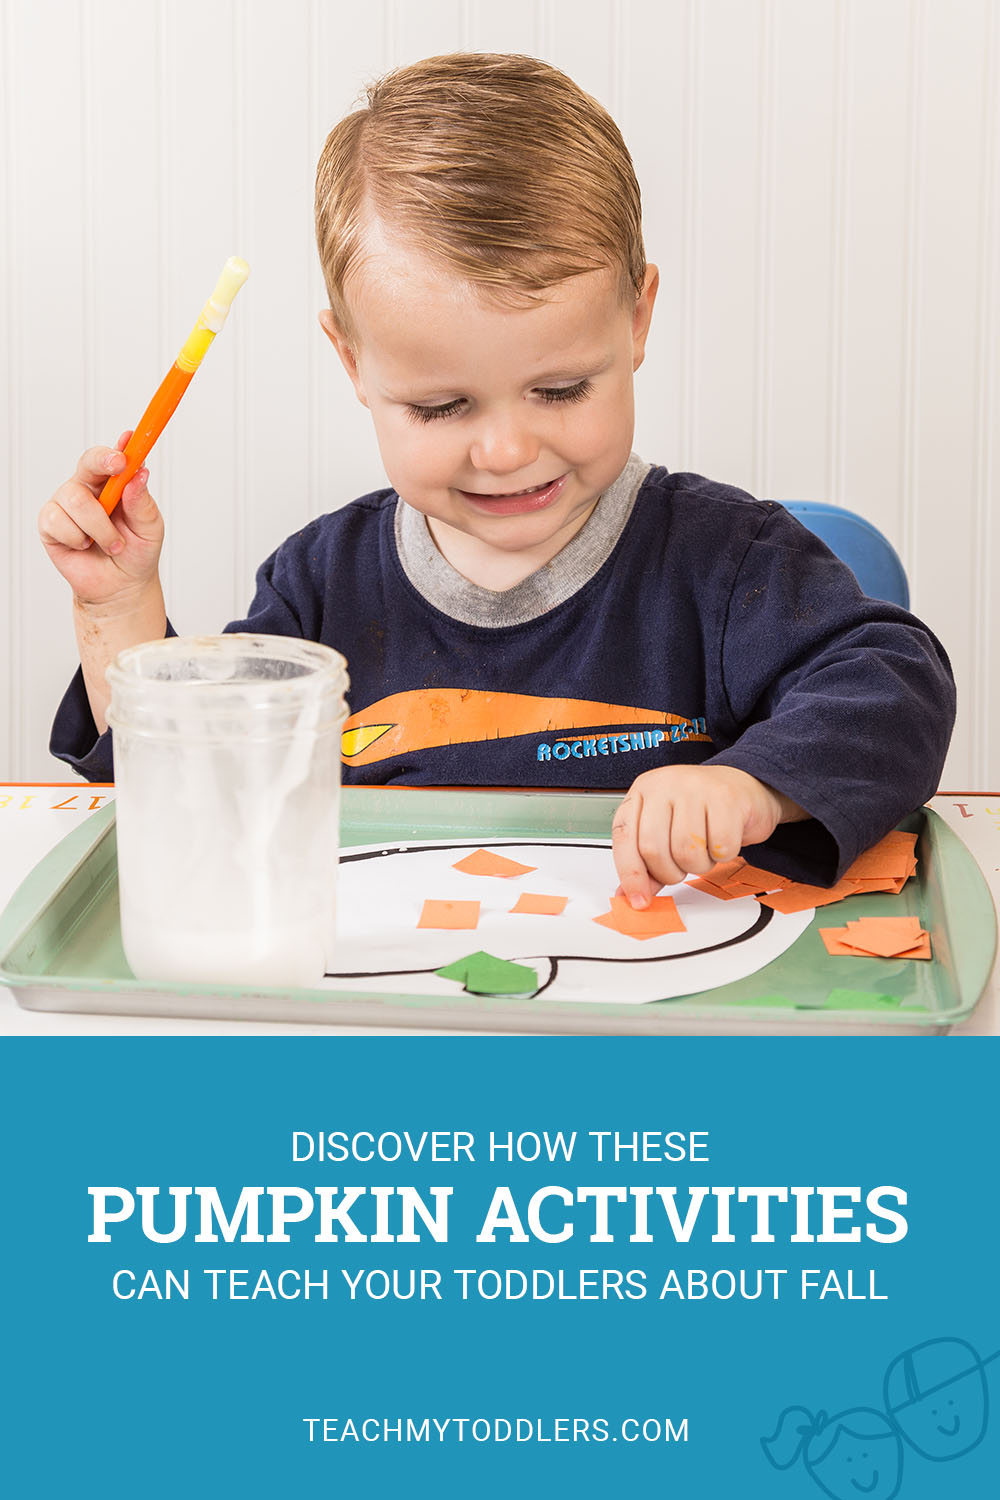 Discover how these pumpkin activities can teach toddlers about fall